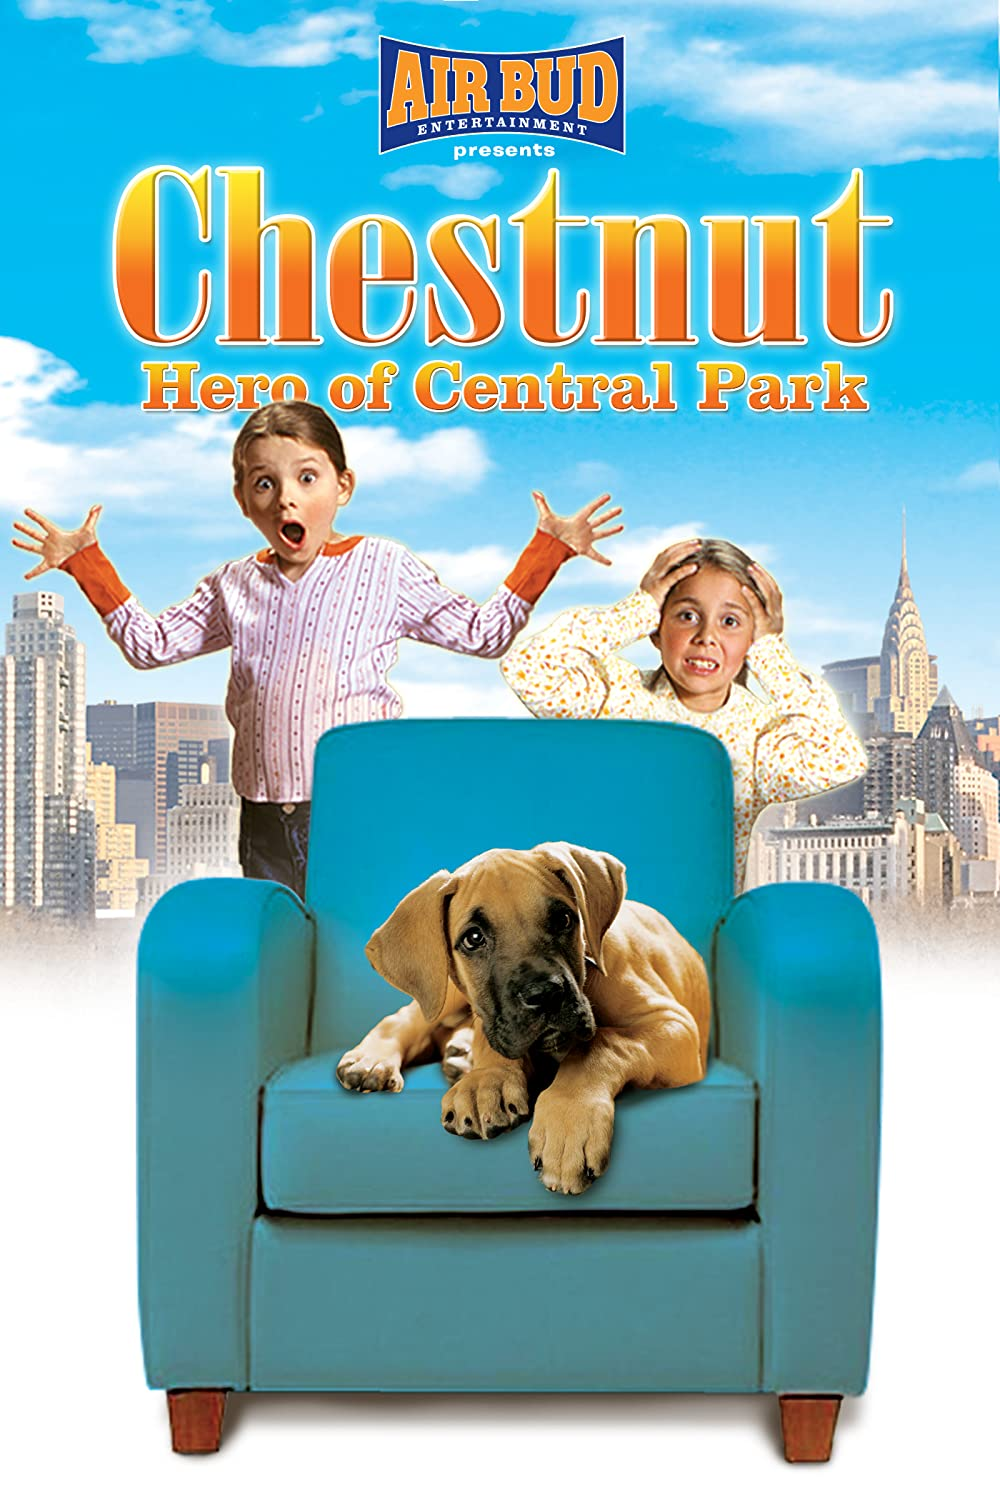 Chestnut: Hero of Central Park 2004 Hindi Dual Audio 480p HDRip ESubs 300MB Download